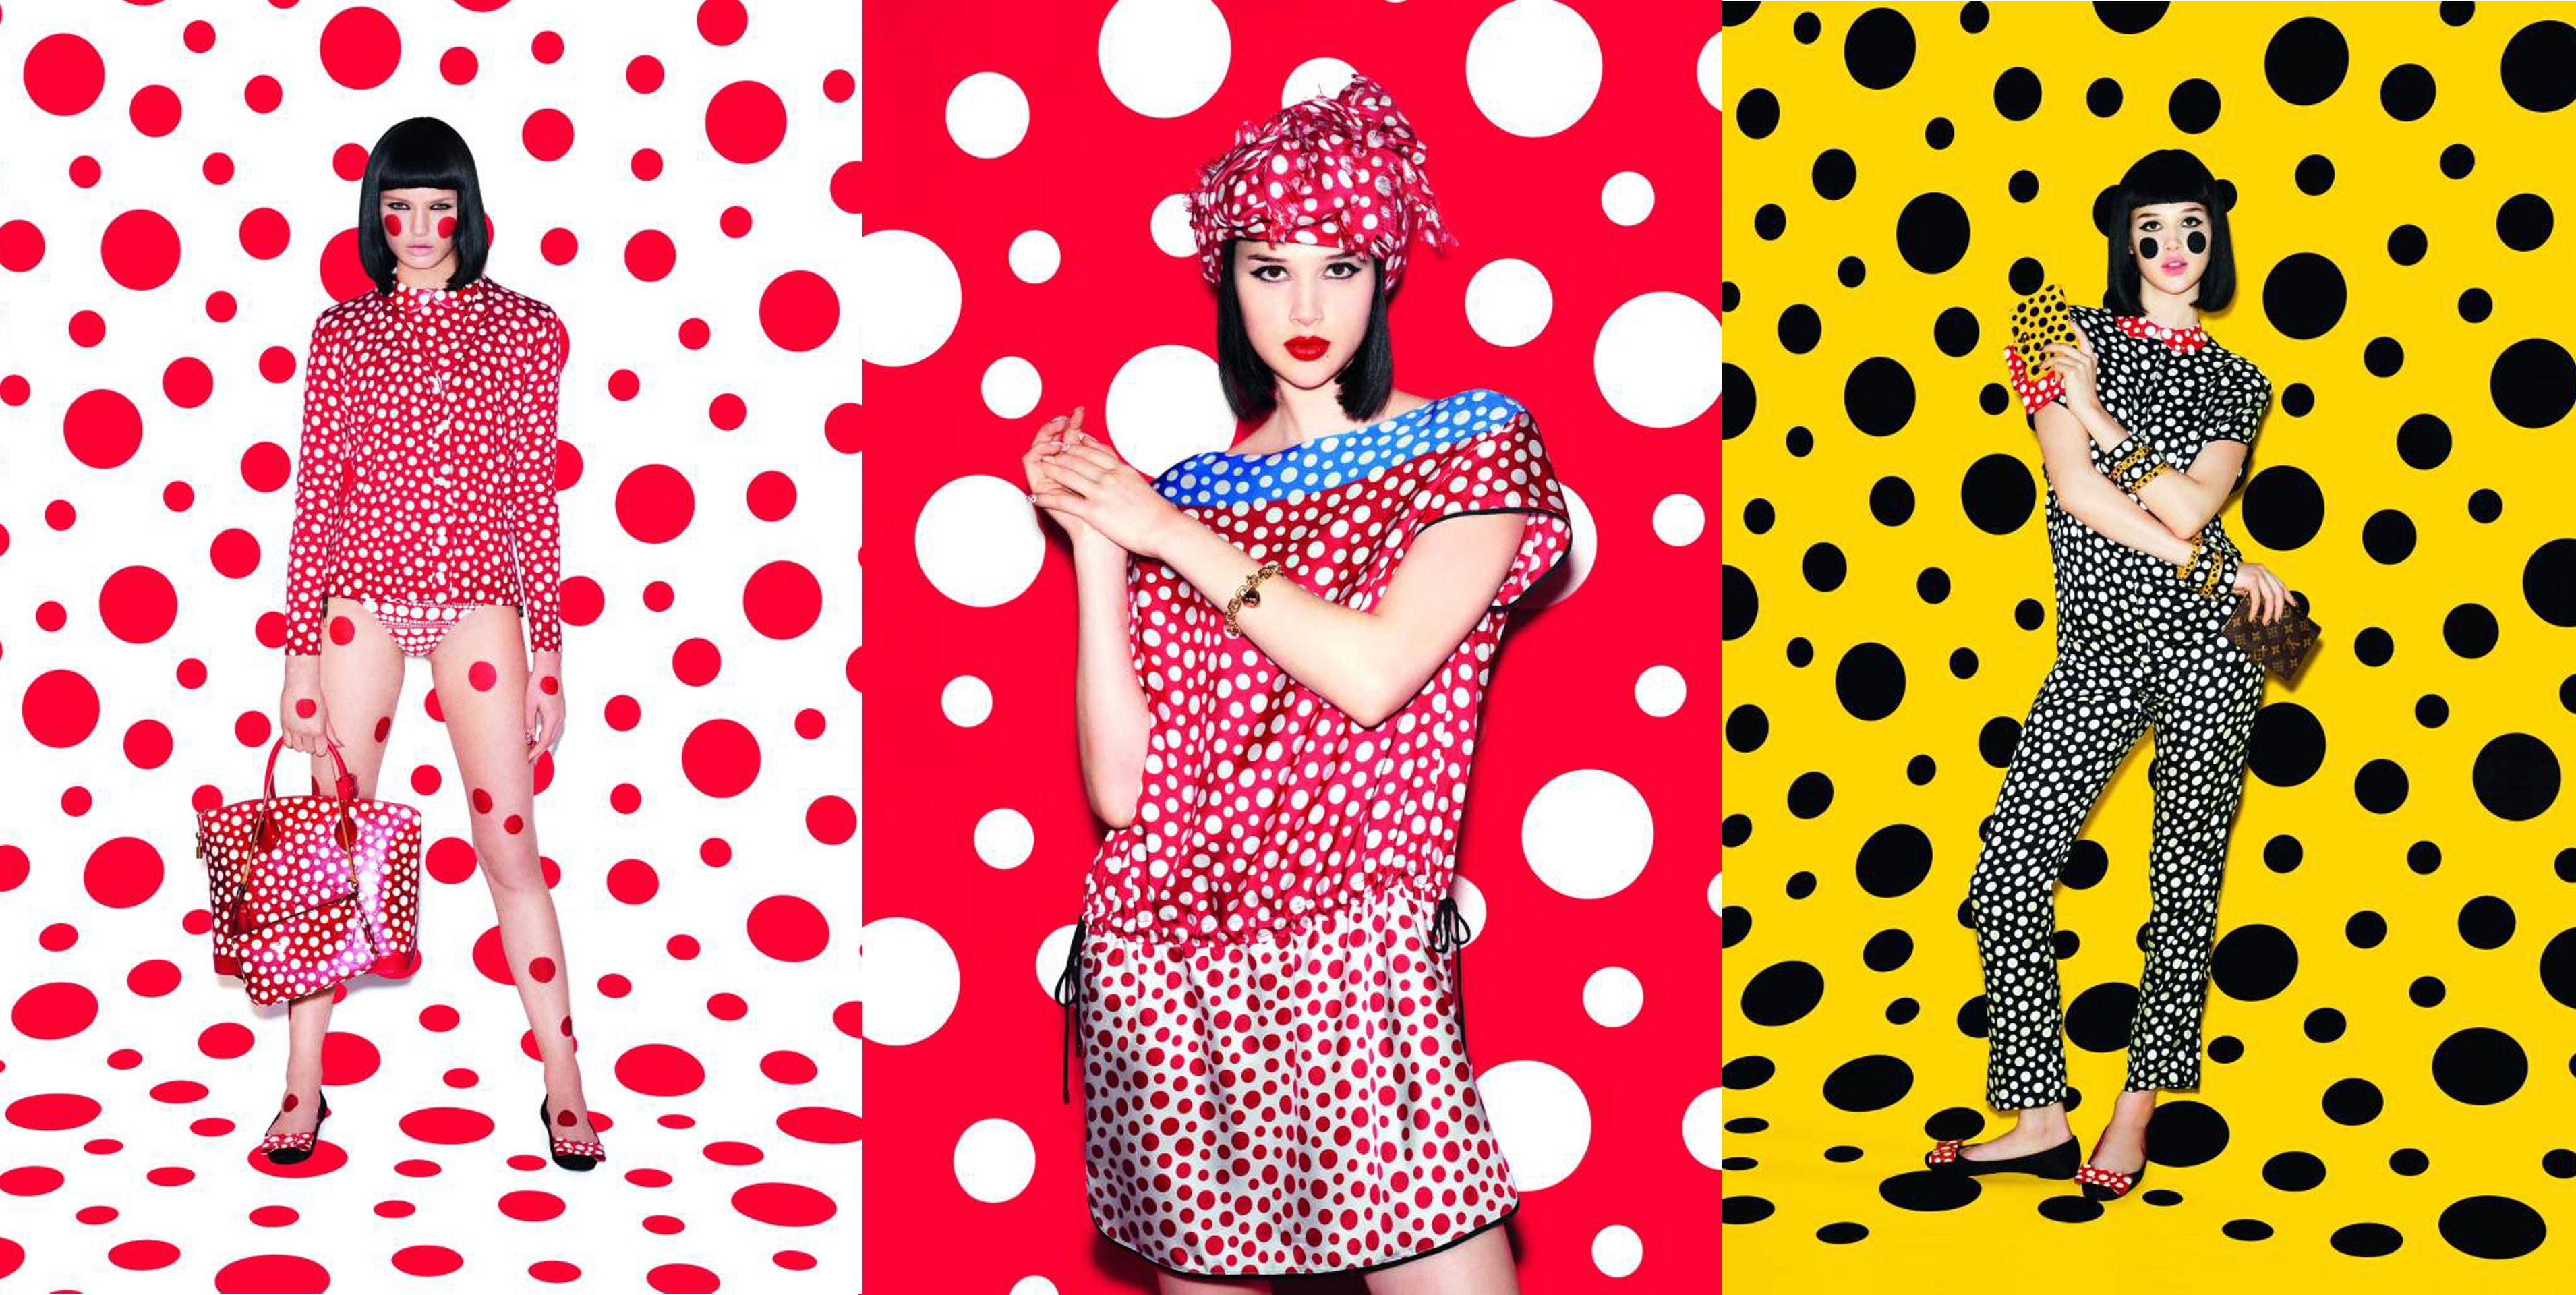 vuitton_kusama9_v_6jul12_pr_b.jpg